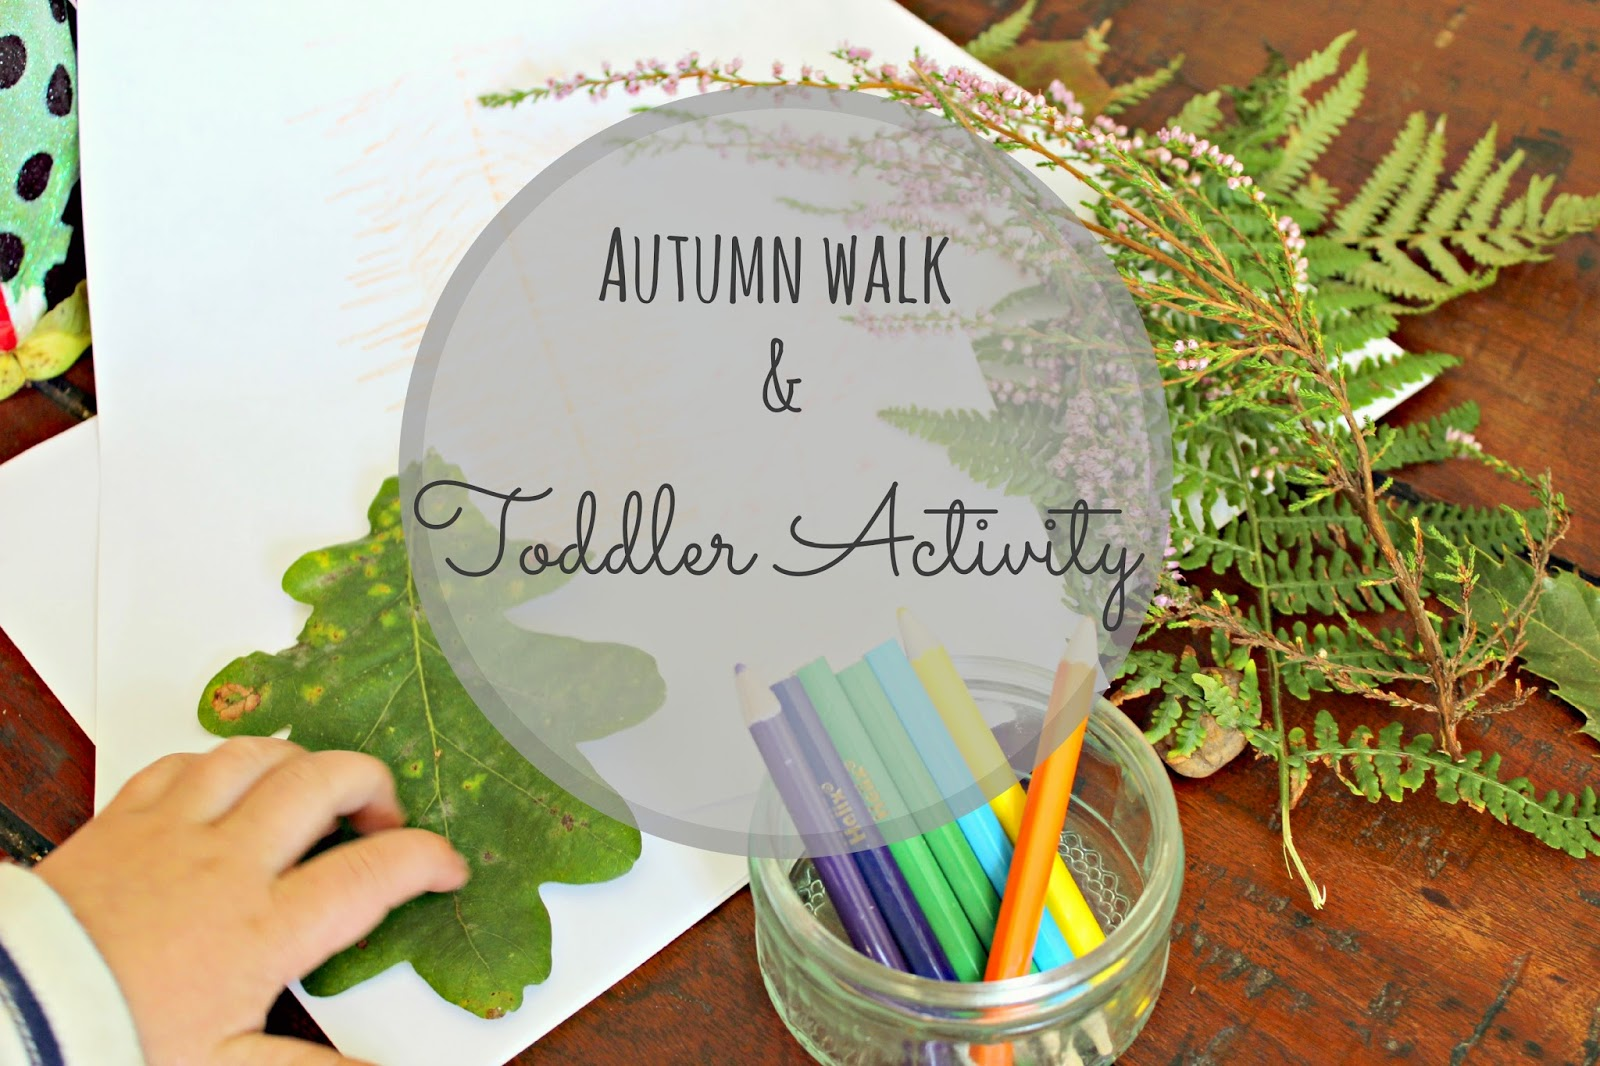 Autumnal toddler activities leaf rubbings